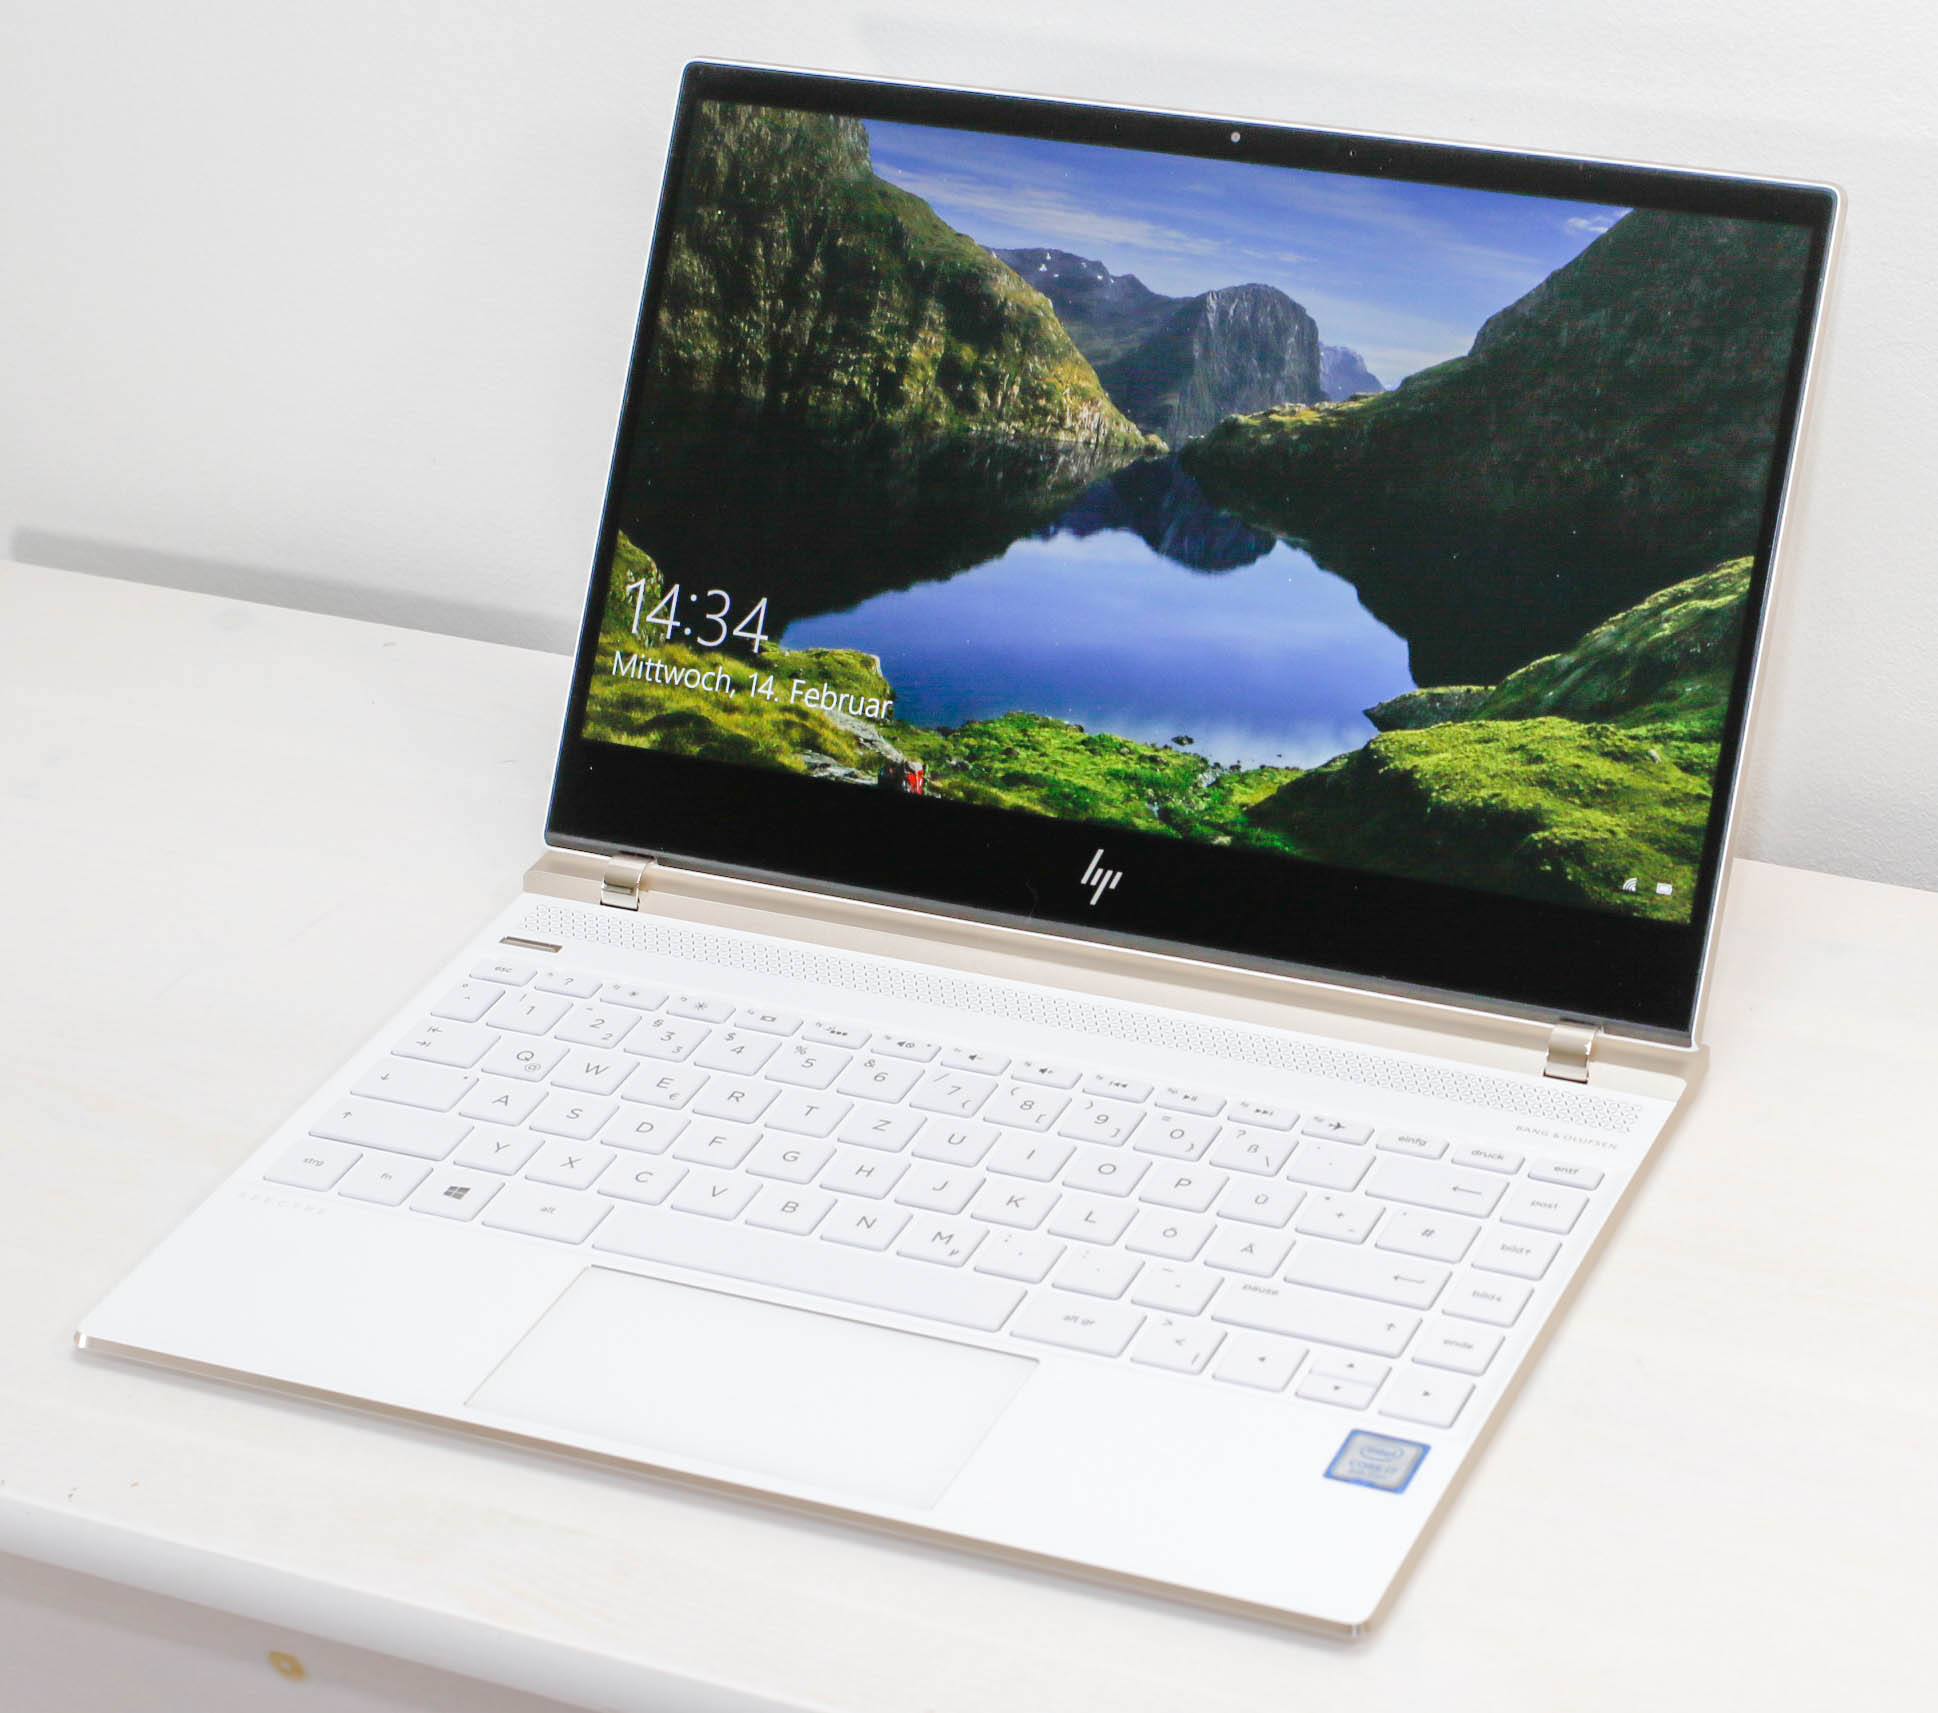 HP Spectre 13-af033 (i7-8550U, FHD) Laptop Review - NotebookCheck